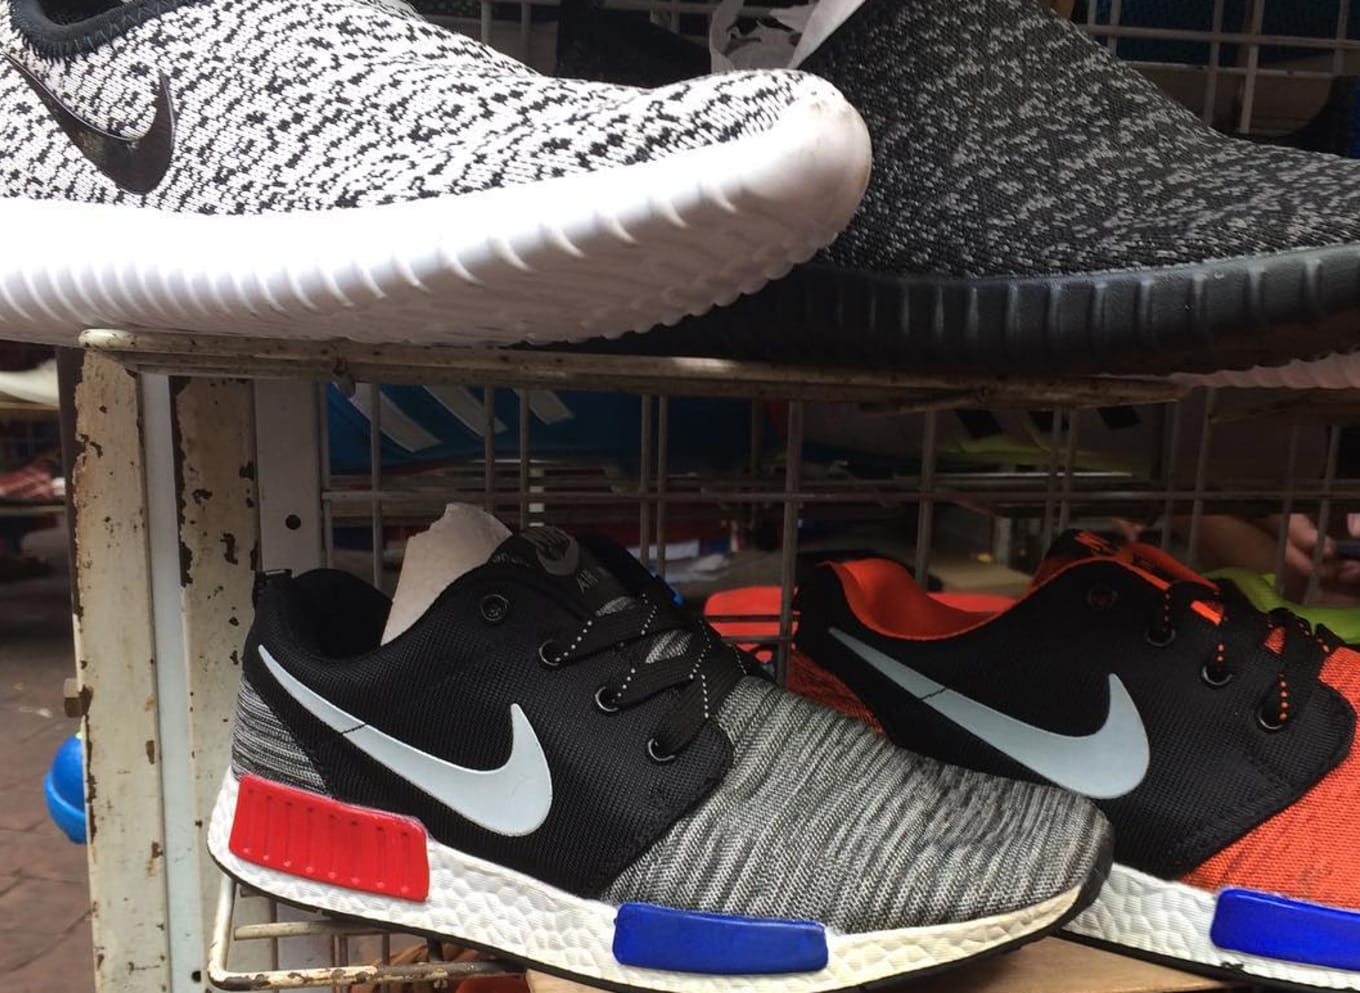 f90095a10c8 Dozens of Fake Nikes Seized by Police in North Carolina | Sole Collector